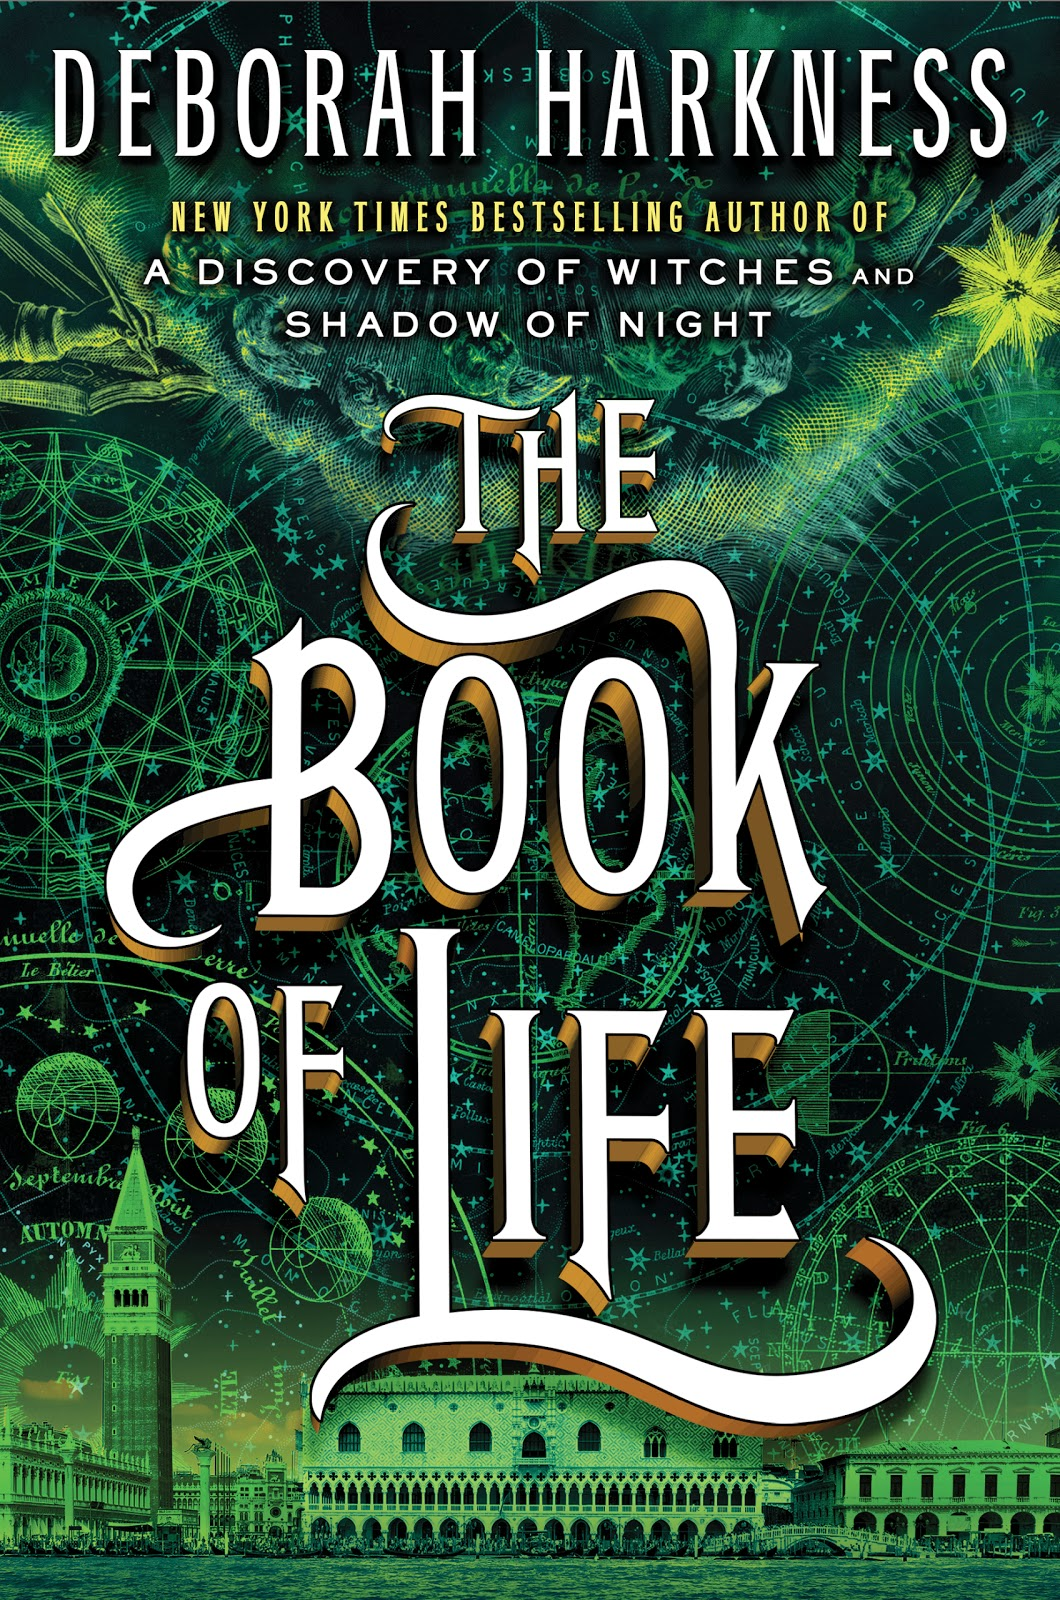 Cover Reveal of The Book of Life (All Souls Trilogy by Deborah Harkness